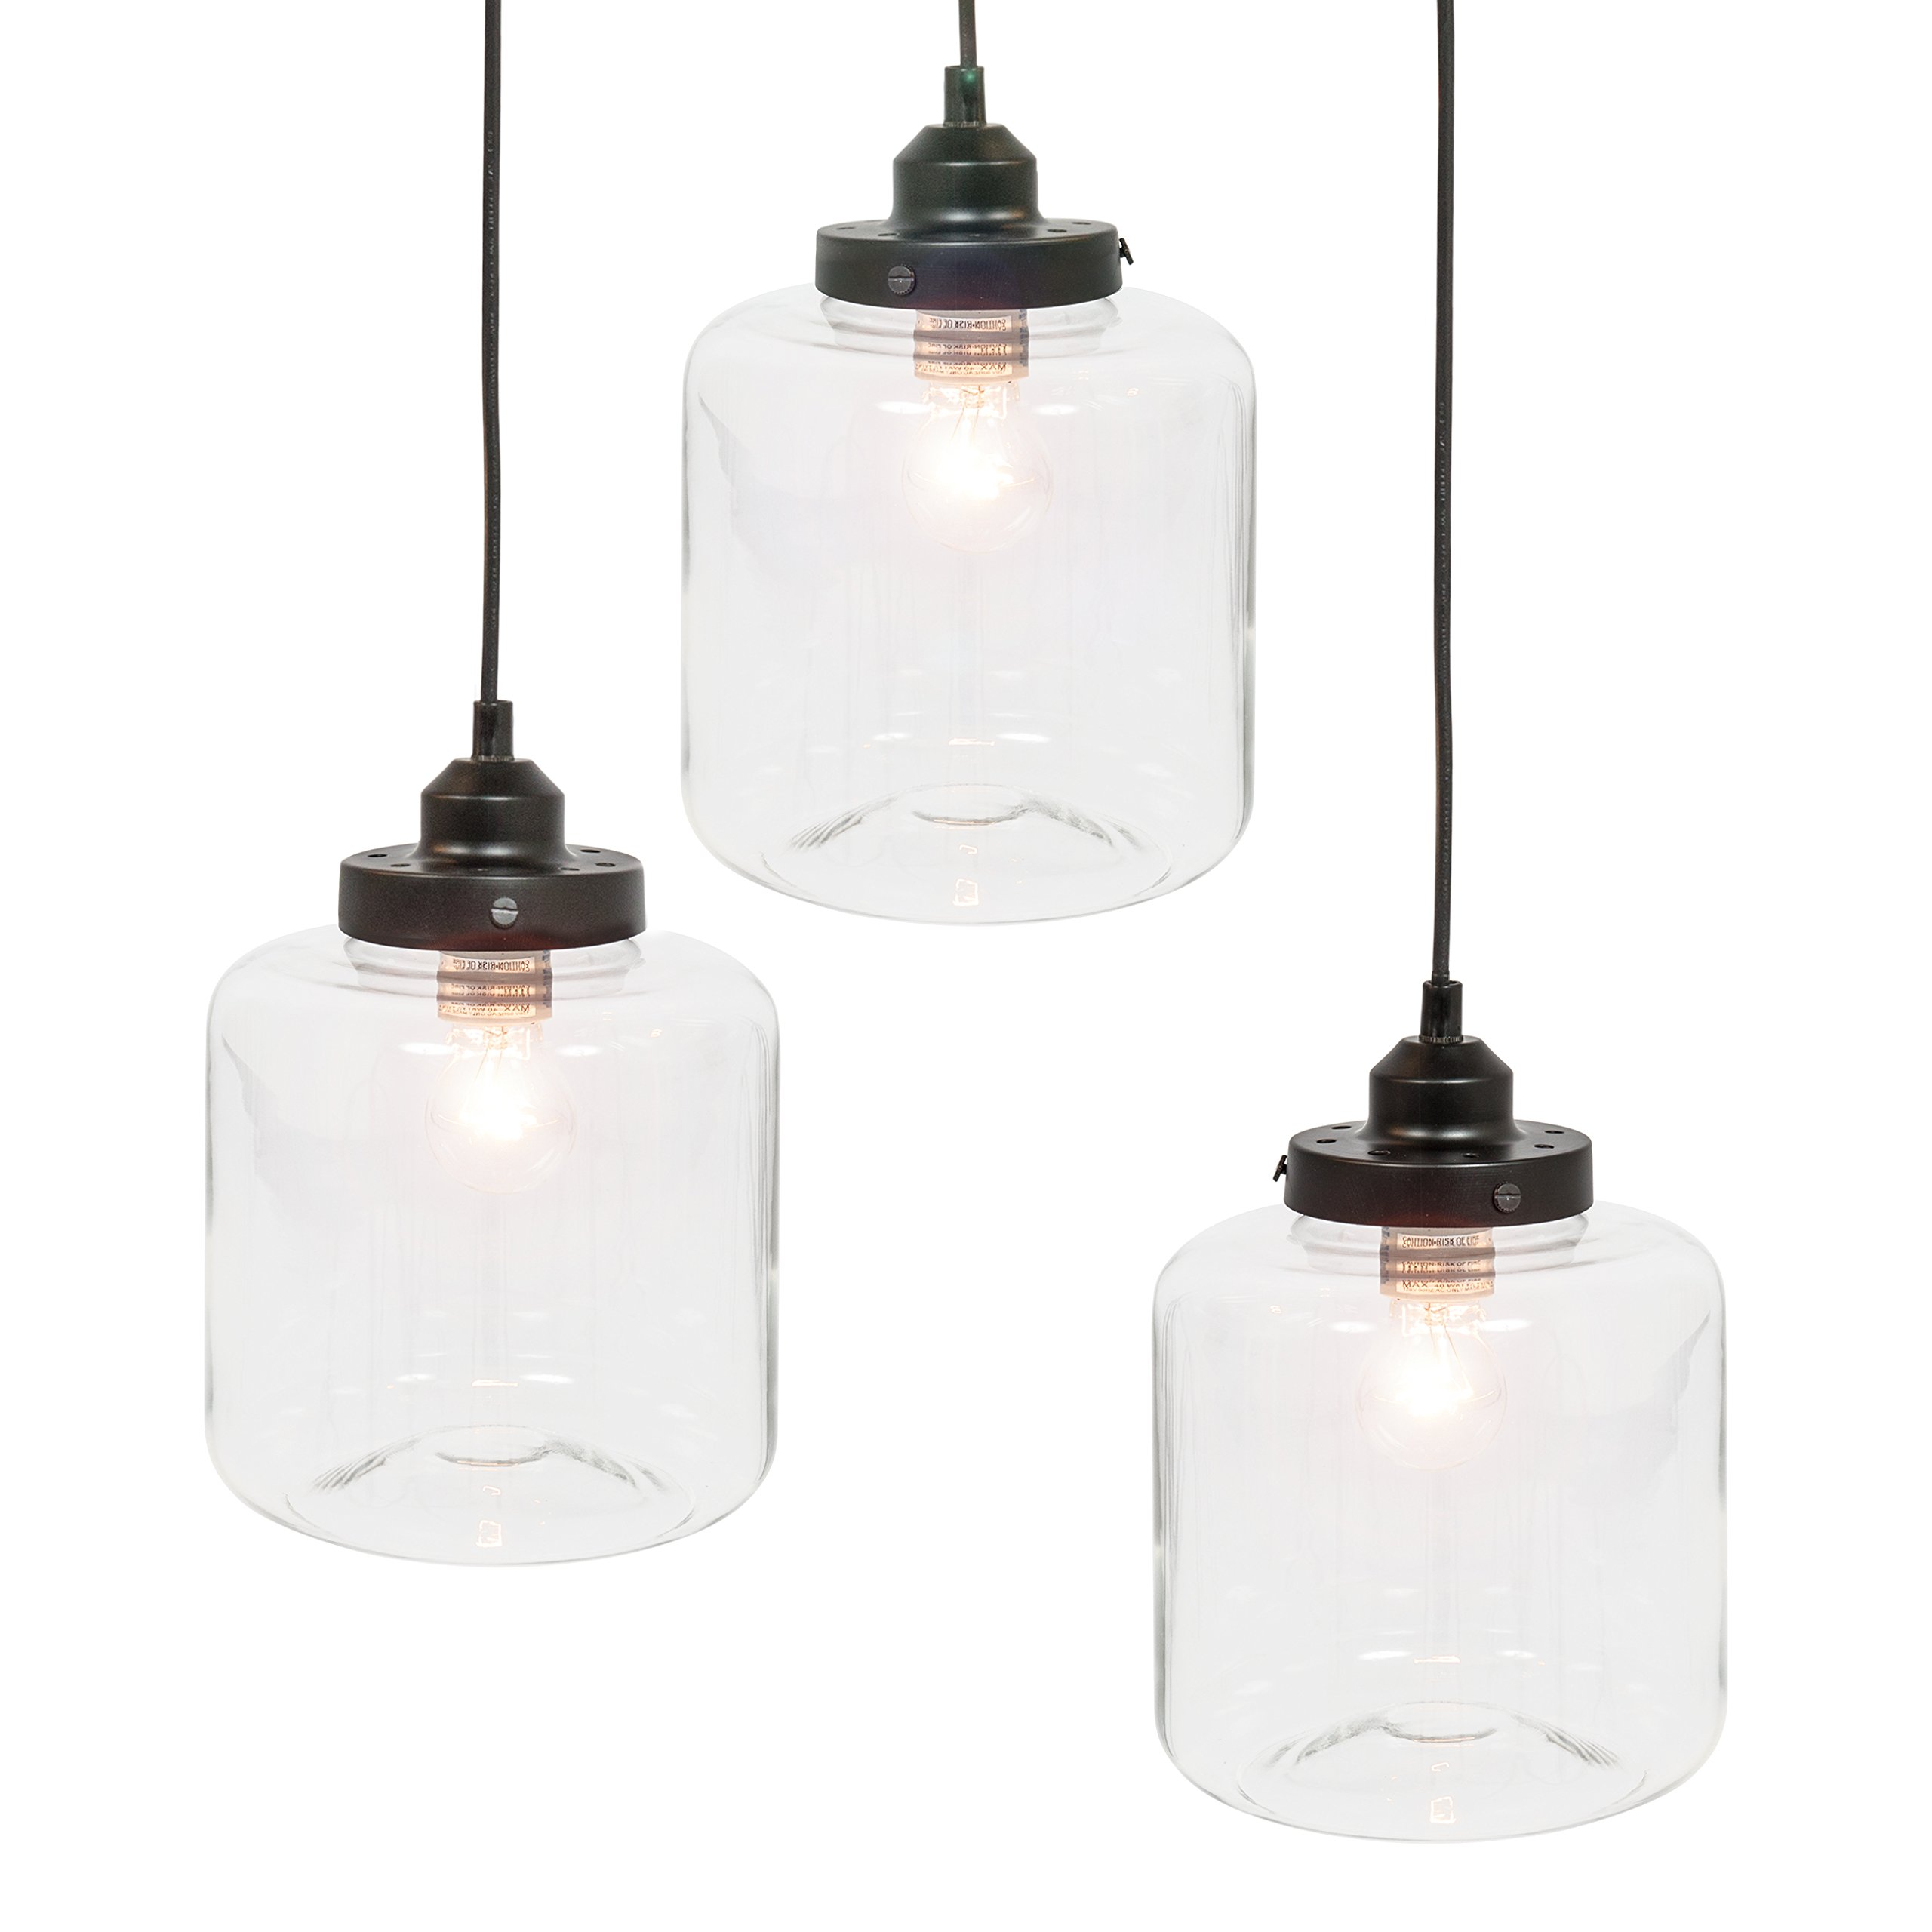 Best Choice Products 3-Light Jar Pendant Chandelier Hanging Light Fixture w/Bulb Included - Black